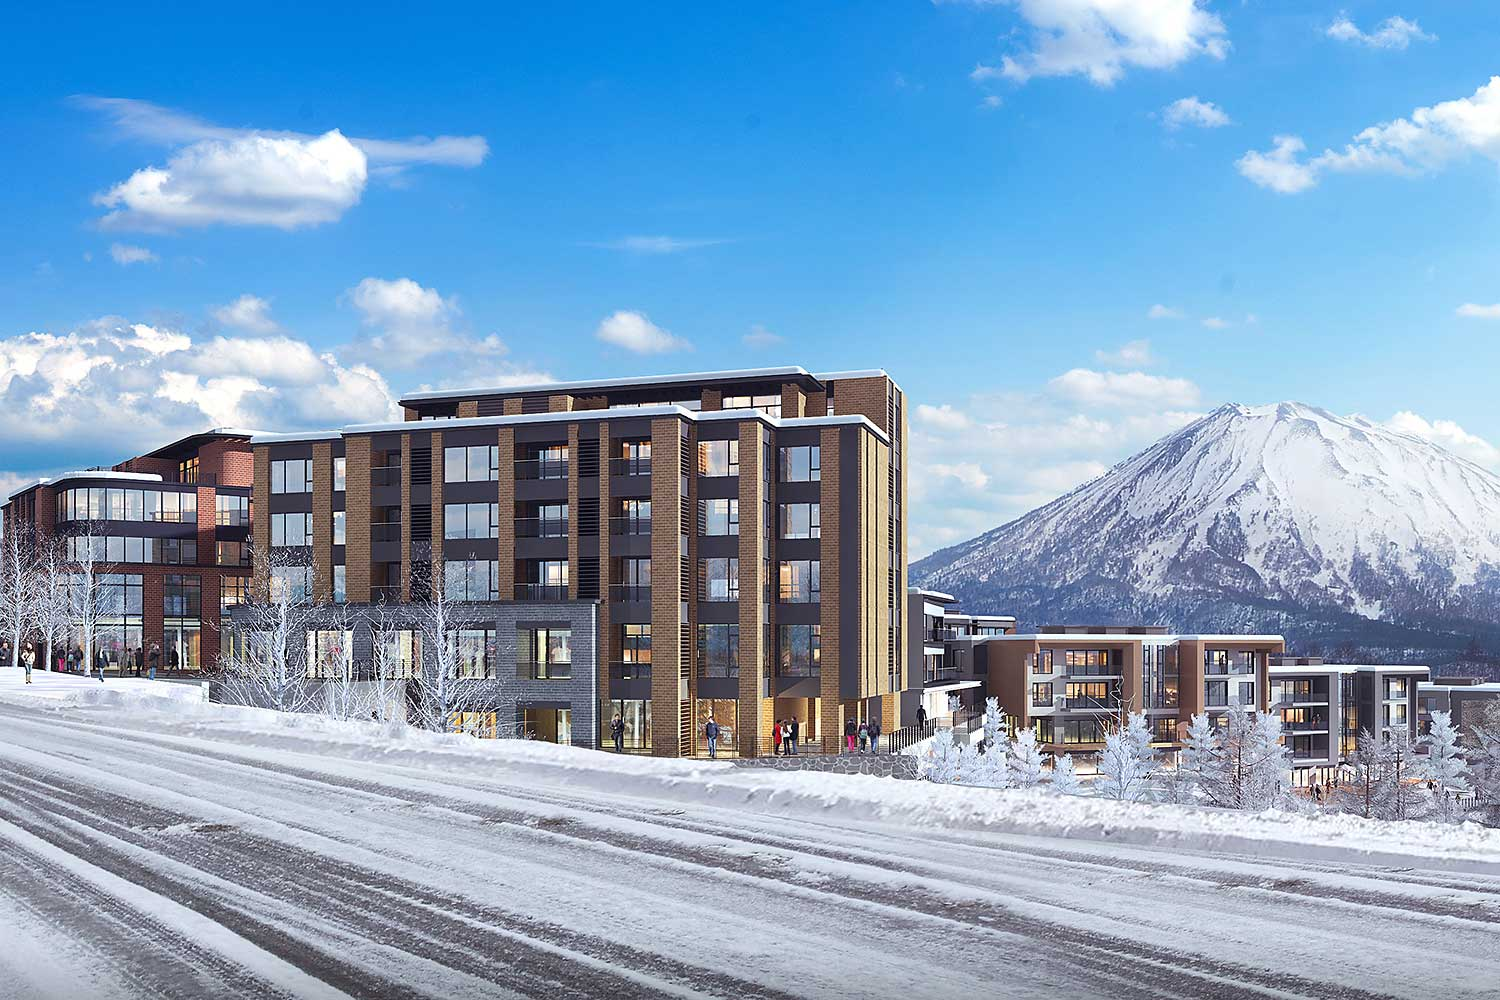 An artist's rendition of the 126-room Amari Niseko hotel.